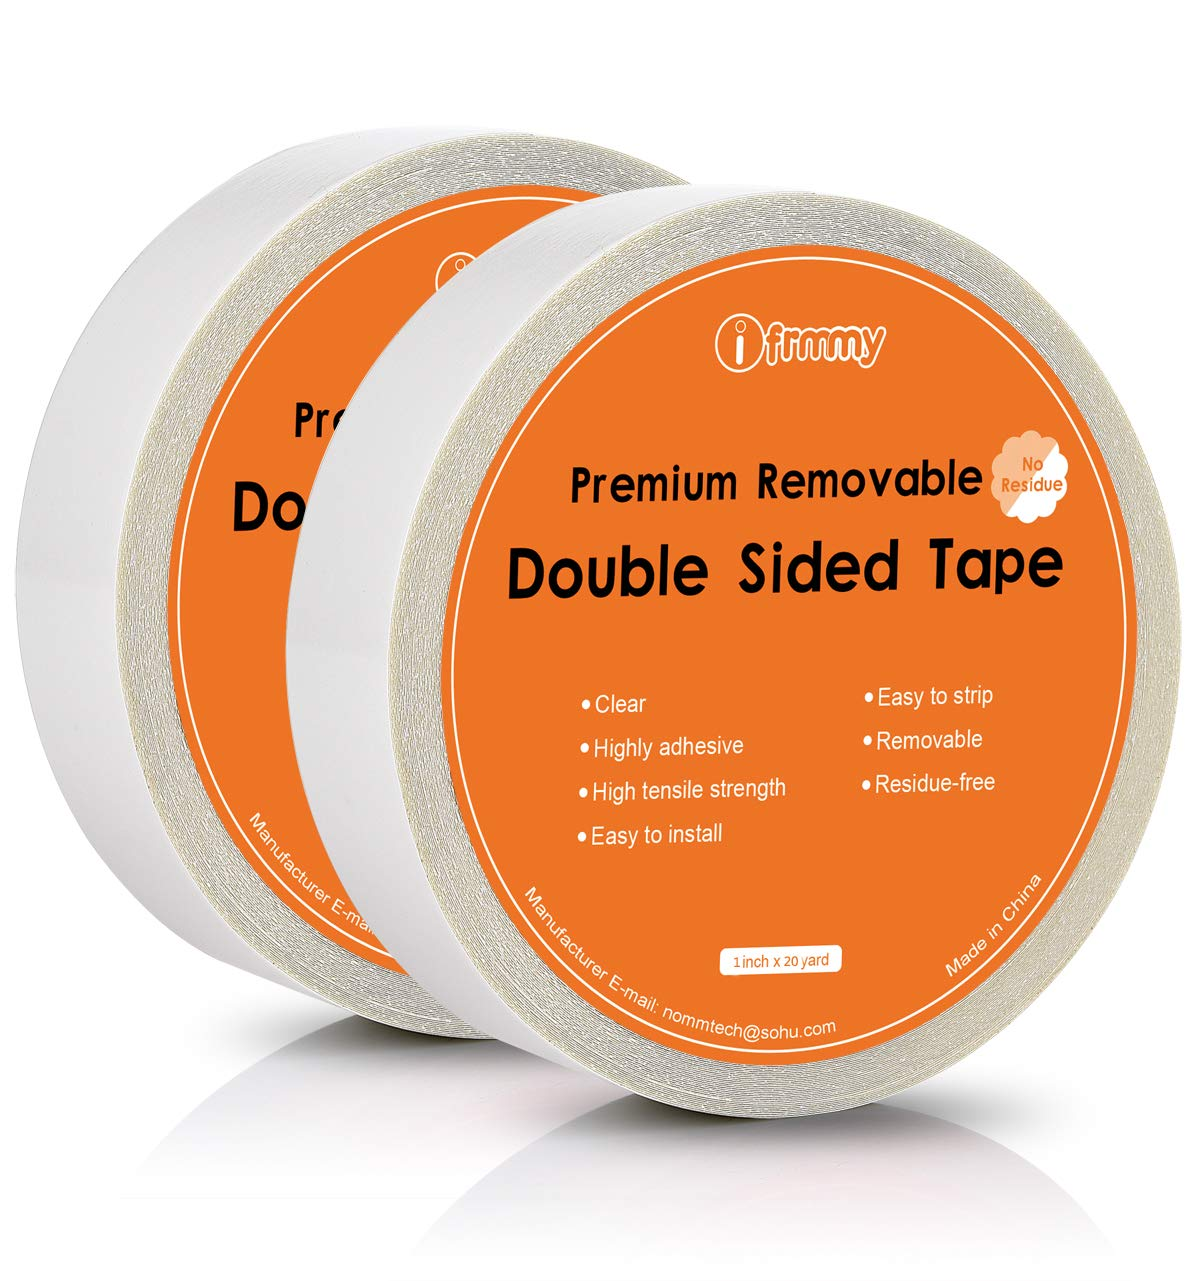 ifrmmy Removable Clear Double Sided Sticky Tape - No Residue, 1 inches x 20 Yards (2 Rolls)